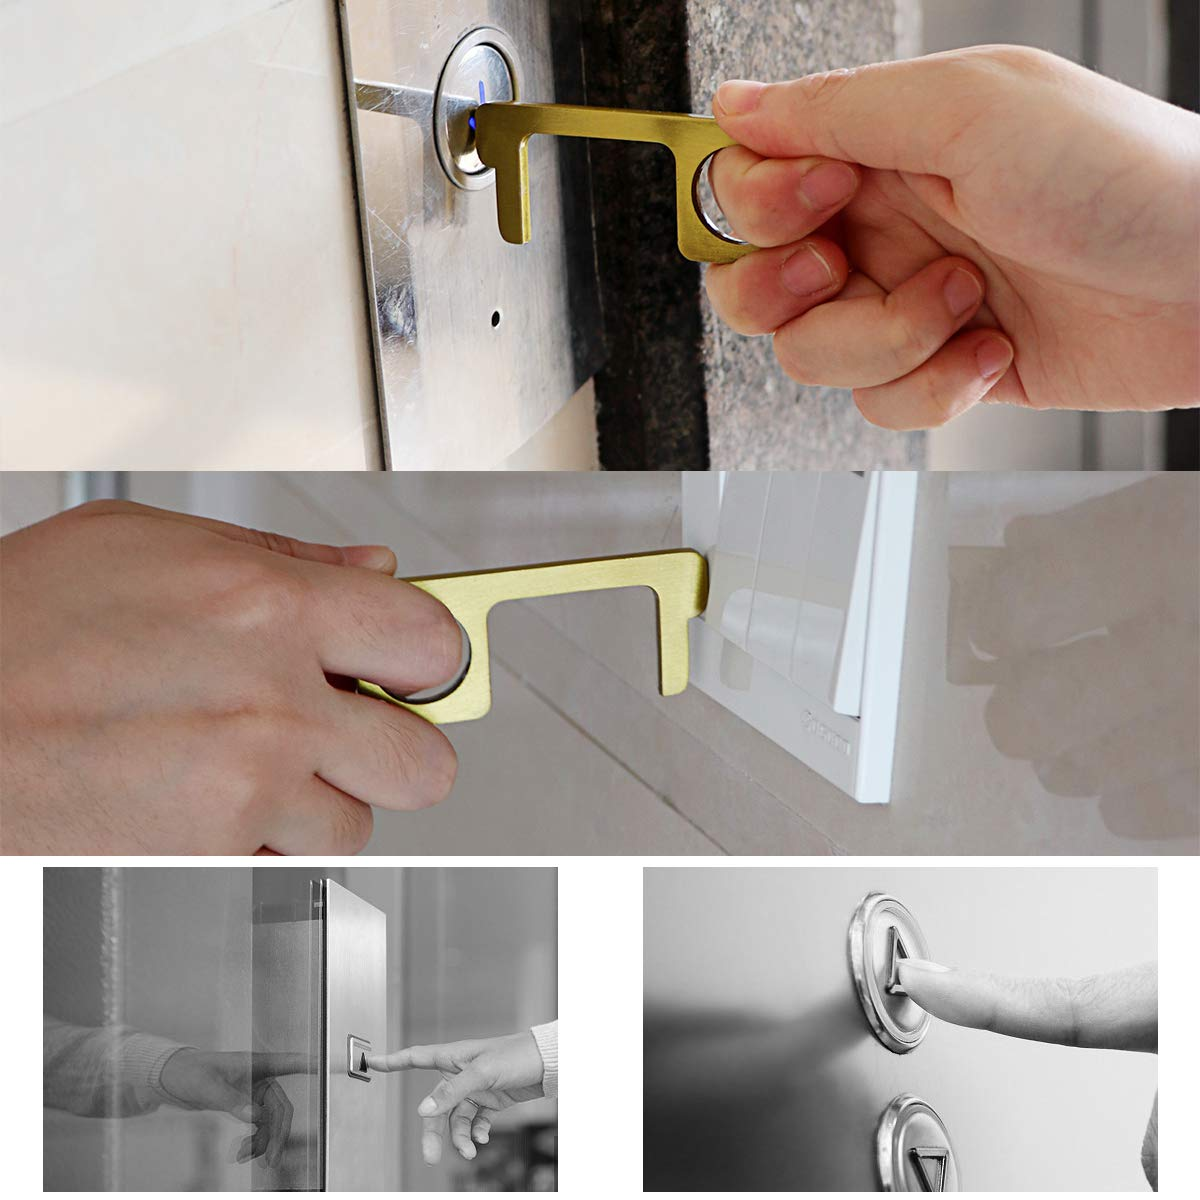 Black Door Opener No Touch Keychain Non-Contact Button Pusher Metal Portable Handle Round Head for Opening Pressing Elevator